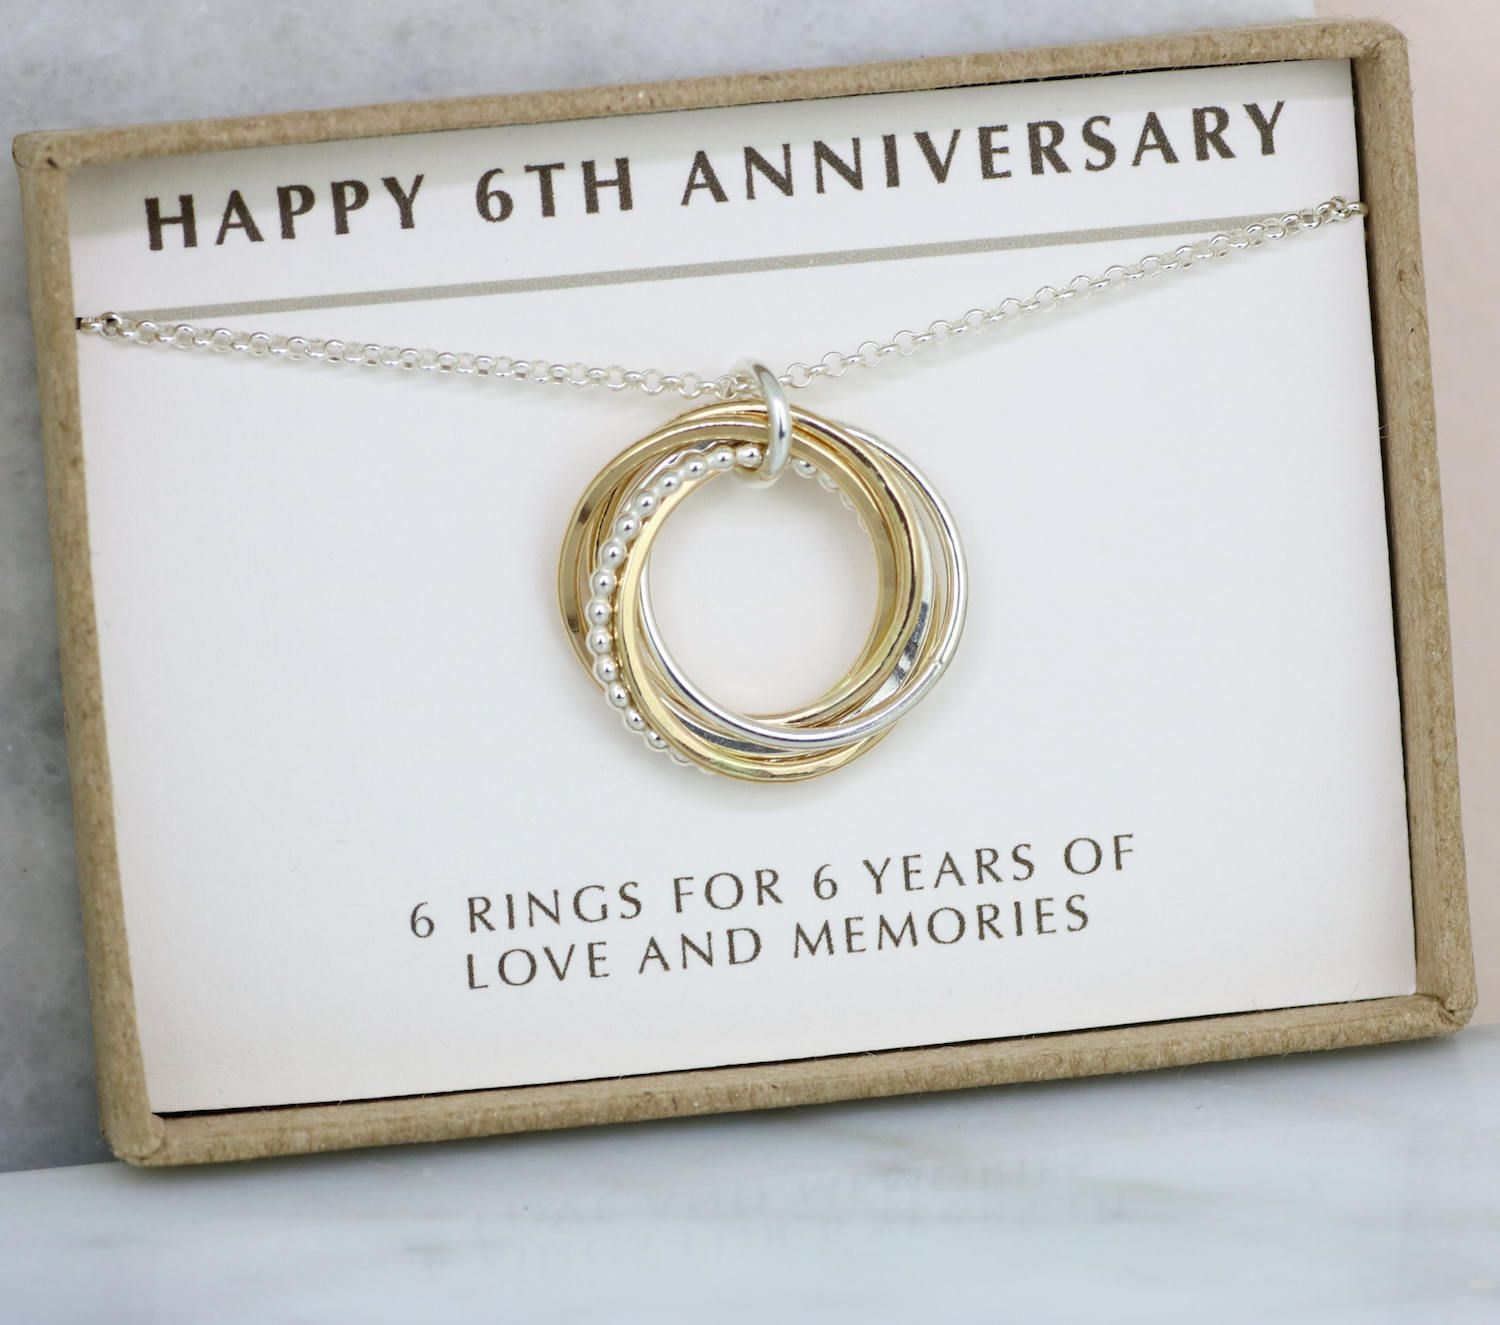 6th Anniversary Gift For Her 6 Year Anniversary Gift For Wife 6 Interlocking Rings Anniversary Gift For Friends 5 Year Anniversary Gift 6th Anniversary Gifts